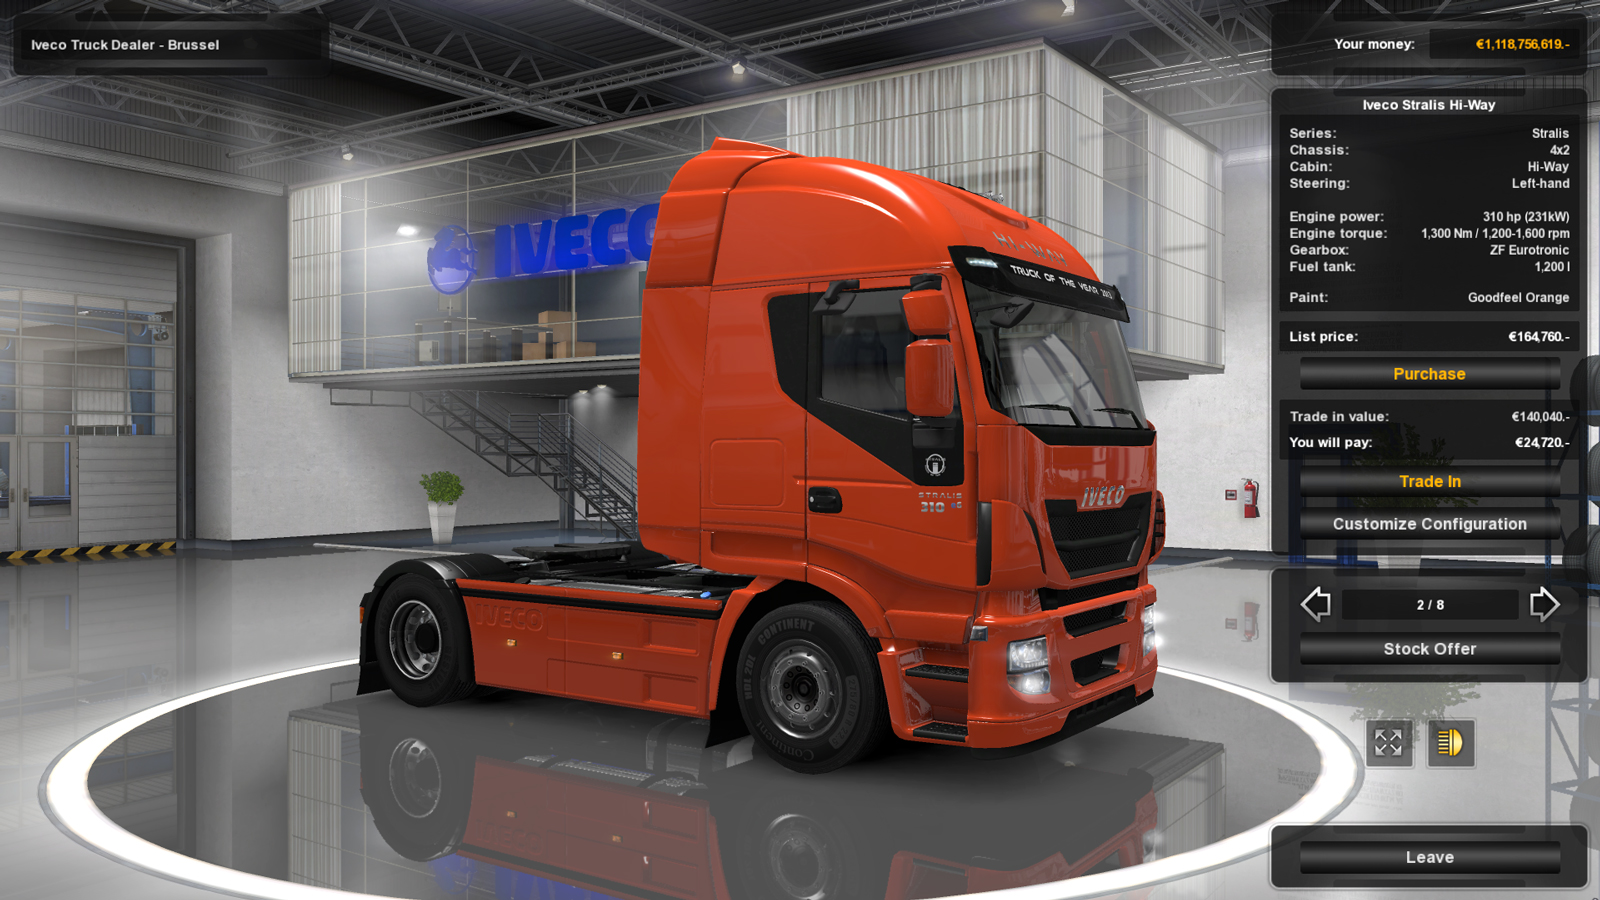 Patch Euro Truck Simulator 2 Multiplayer - marblxs's diary